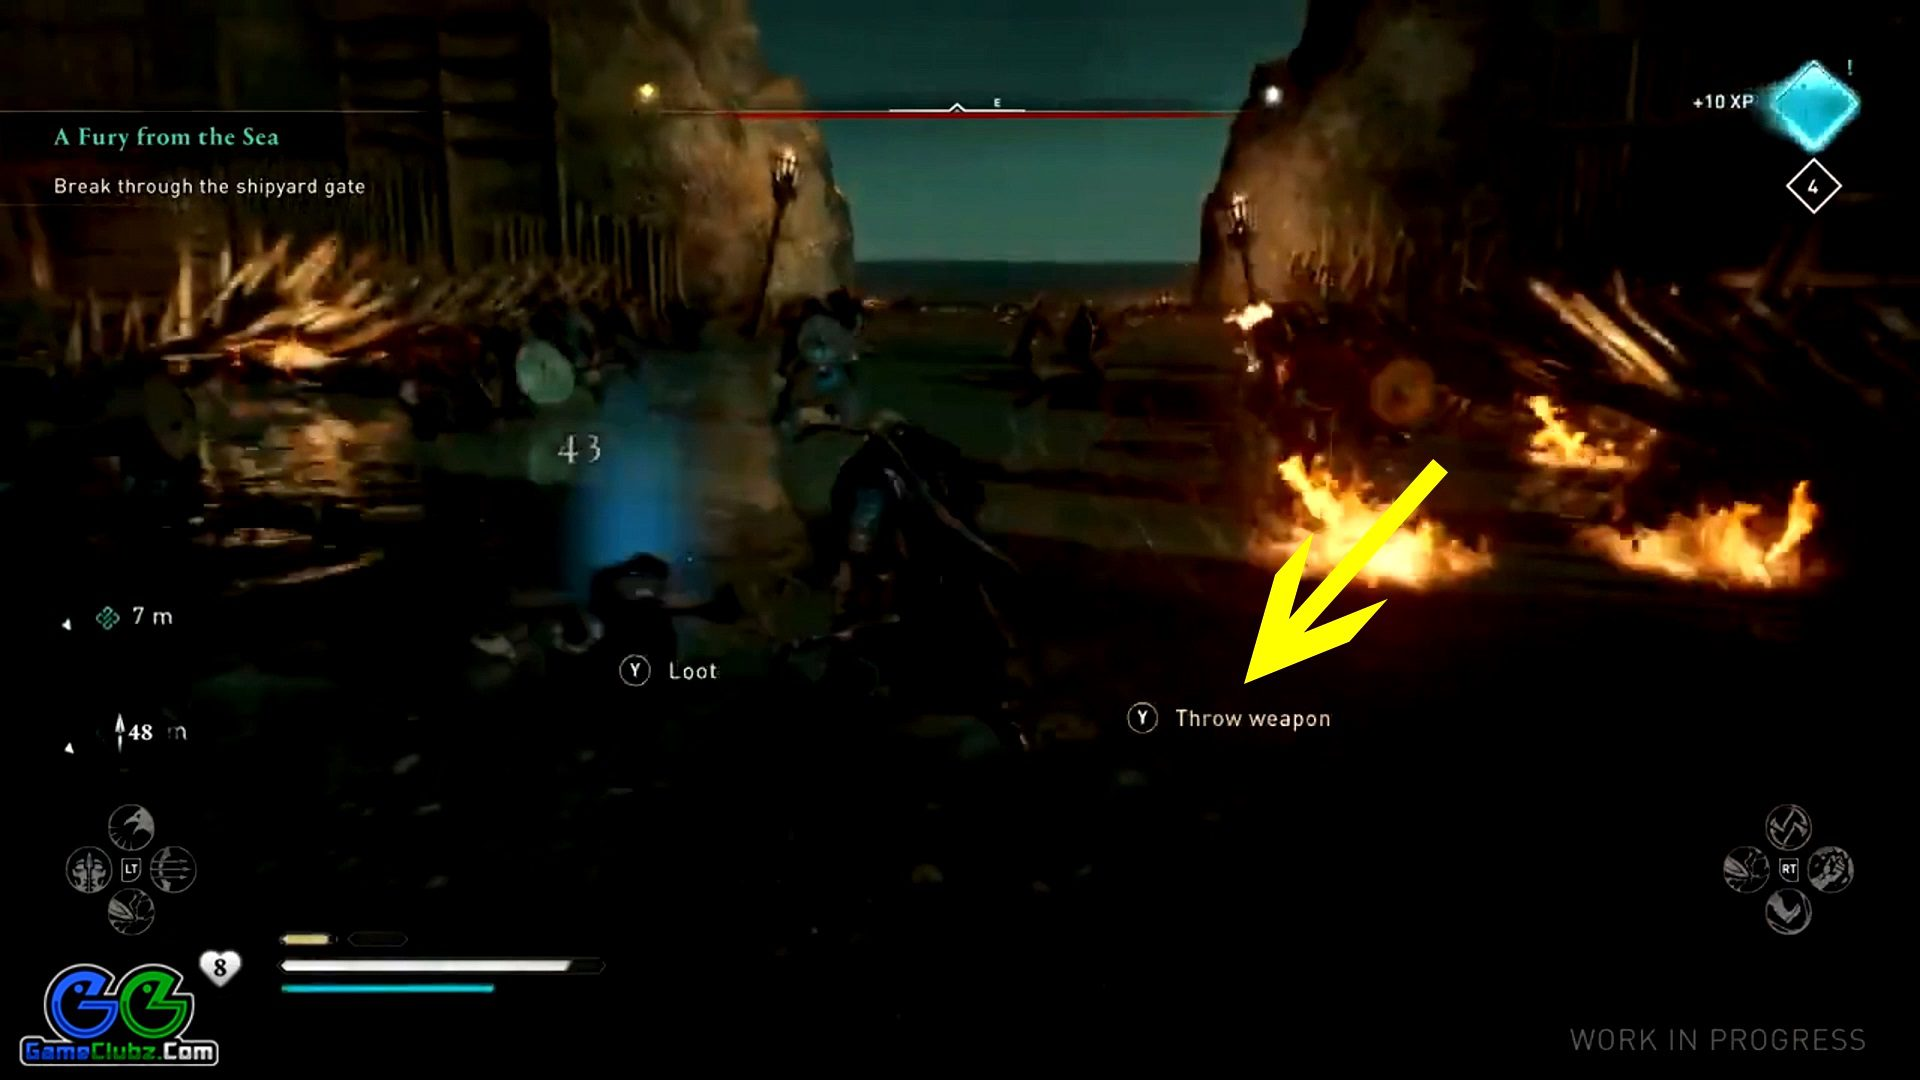 Assassin's Creed Valhalla Throwing Weapons